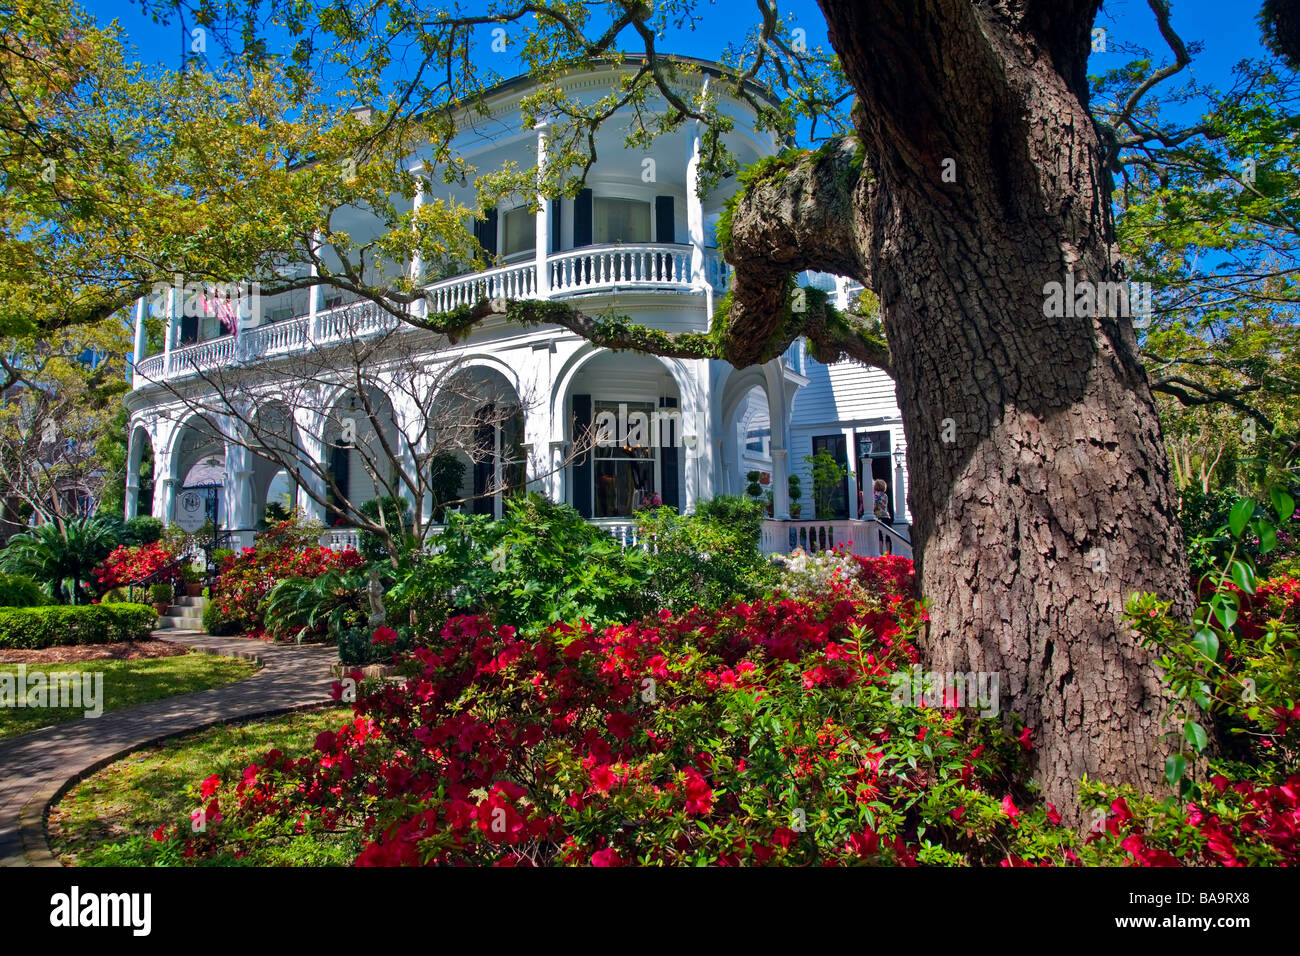 Garden with azaleas in bloom at Villa with Southern Architecture and Design in Charleston South Carolina USA North - Stock Image